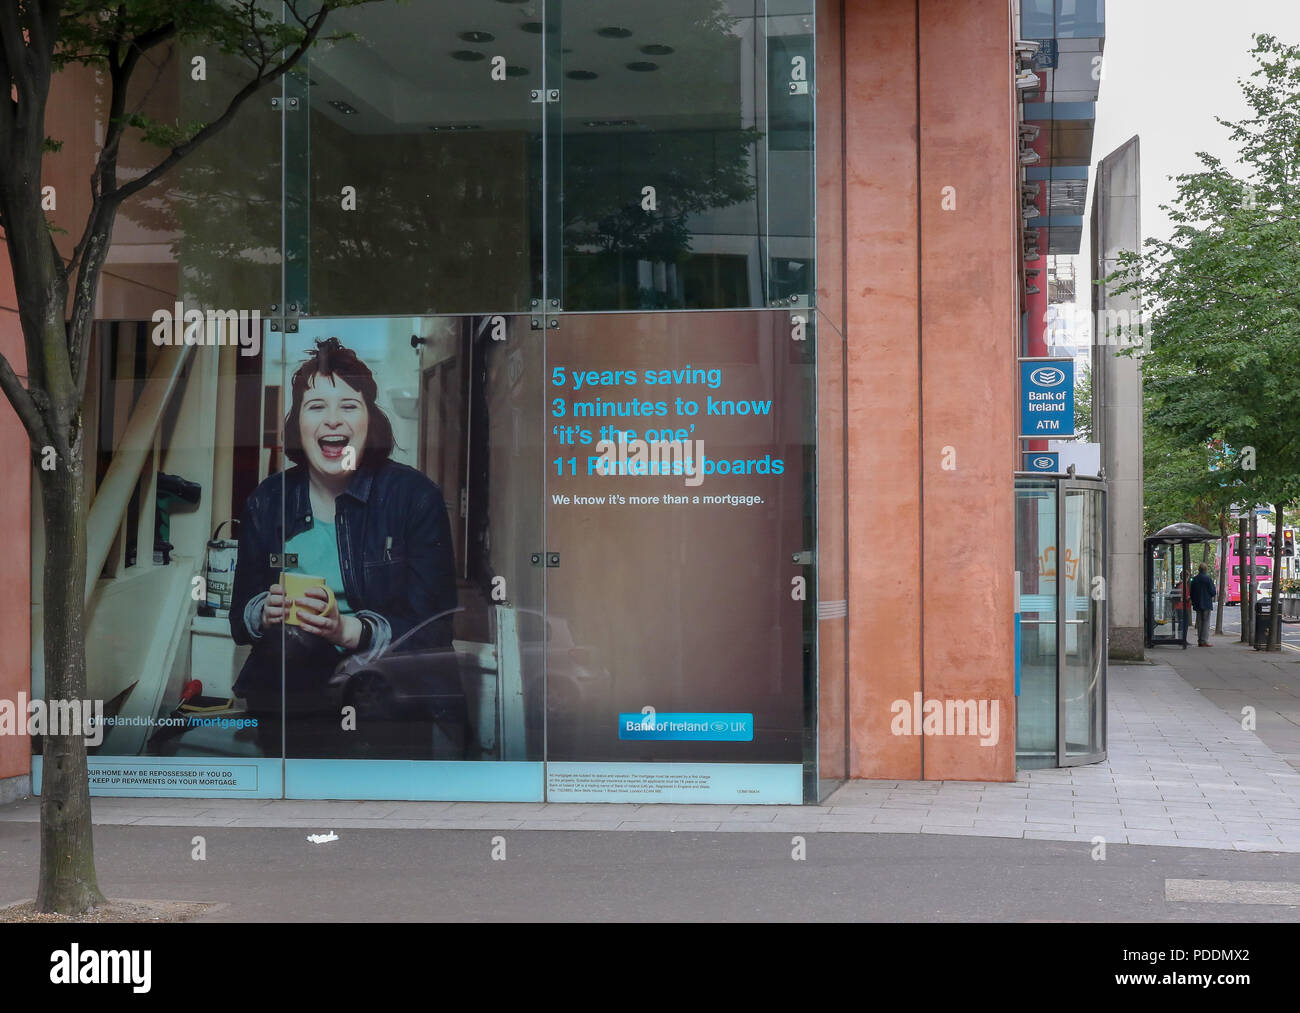 Bank of Ireland building and advertisement - Stock Image